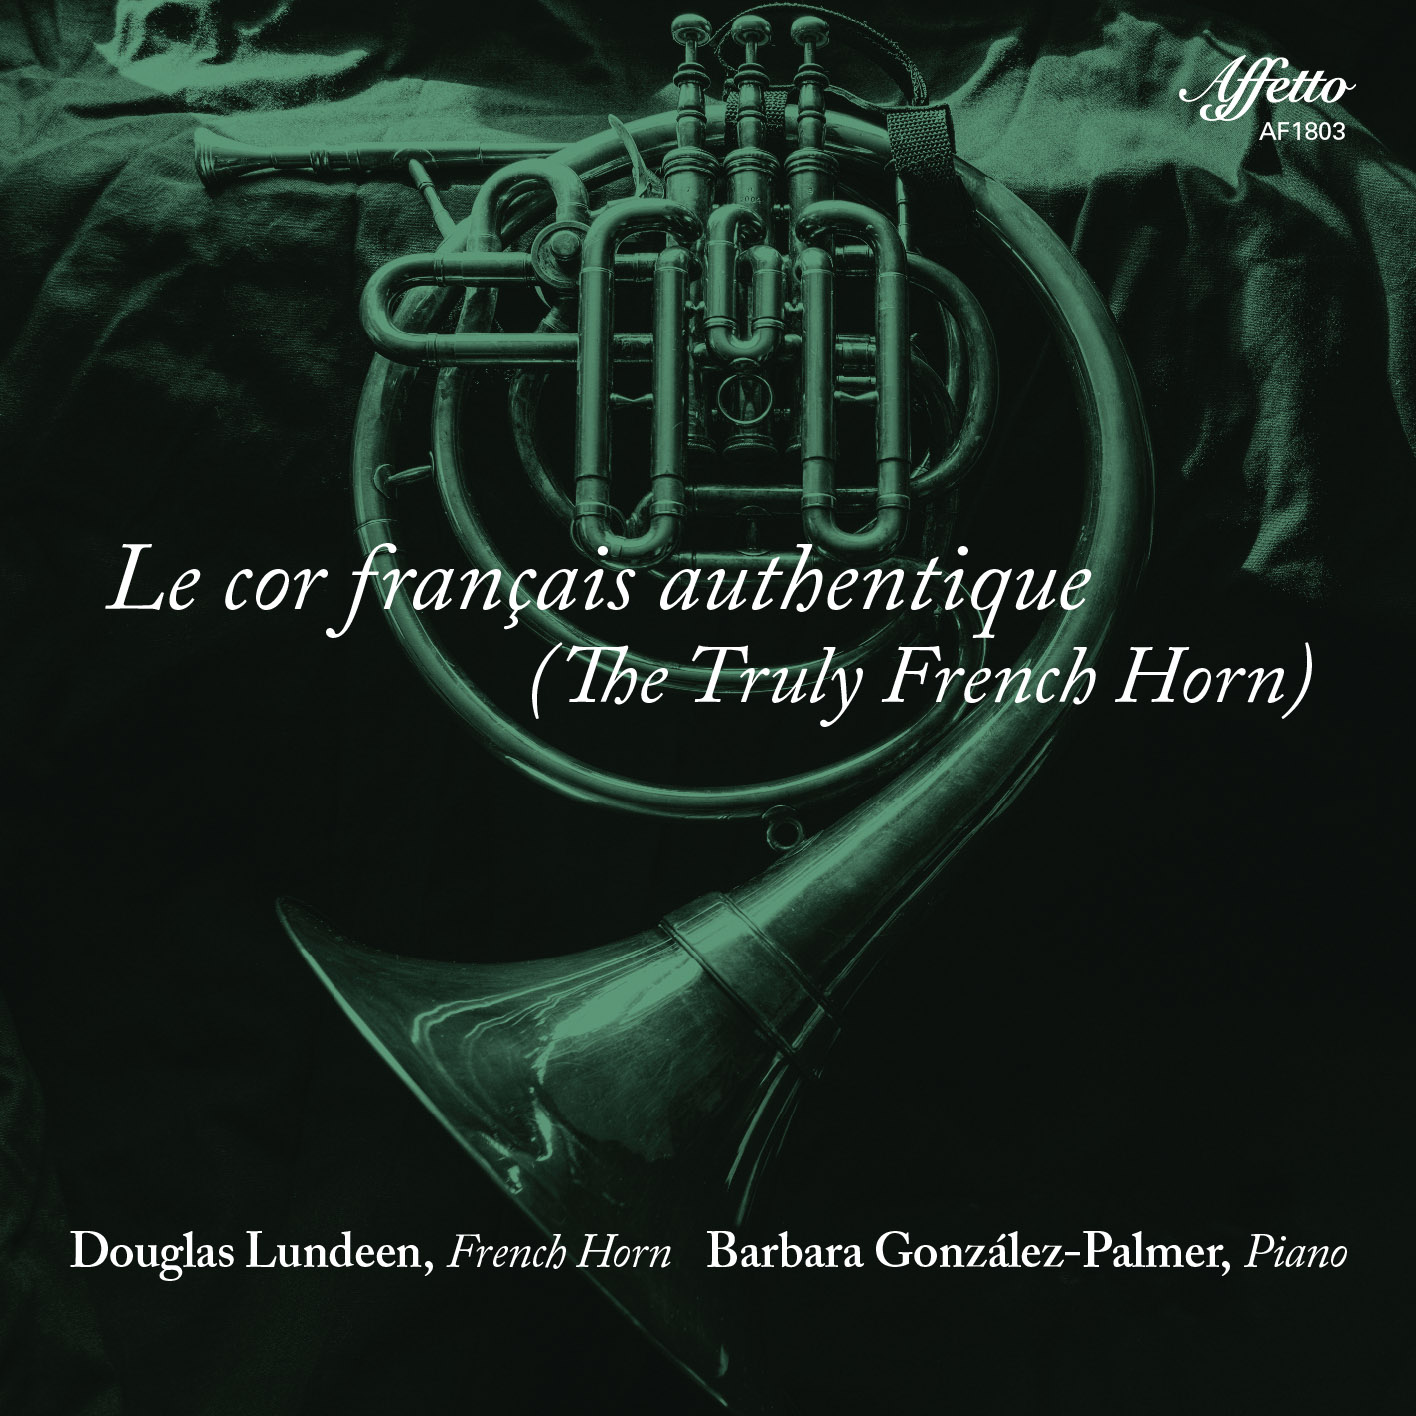 Douglas Lundren, French Horn / Barbara Gonzales-Palmer, Piano – Le cor francais authentique (The Truly French Horn)